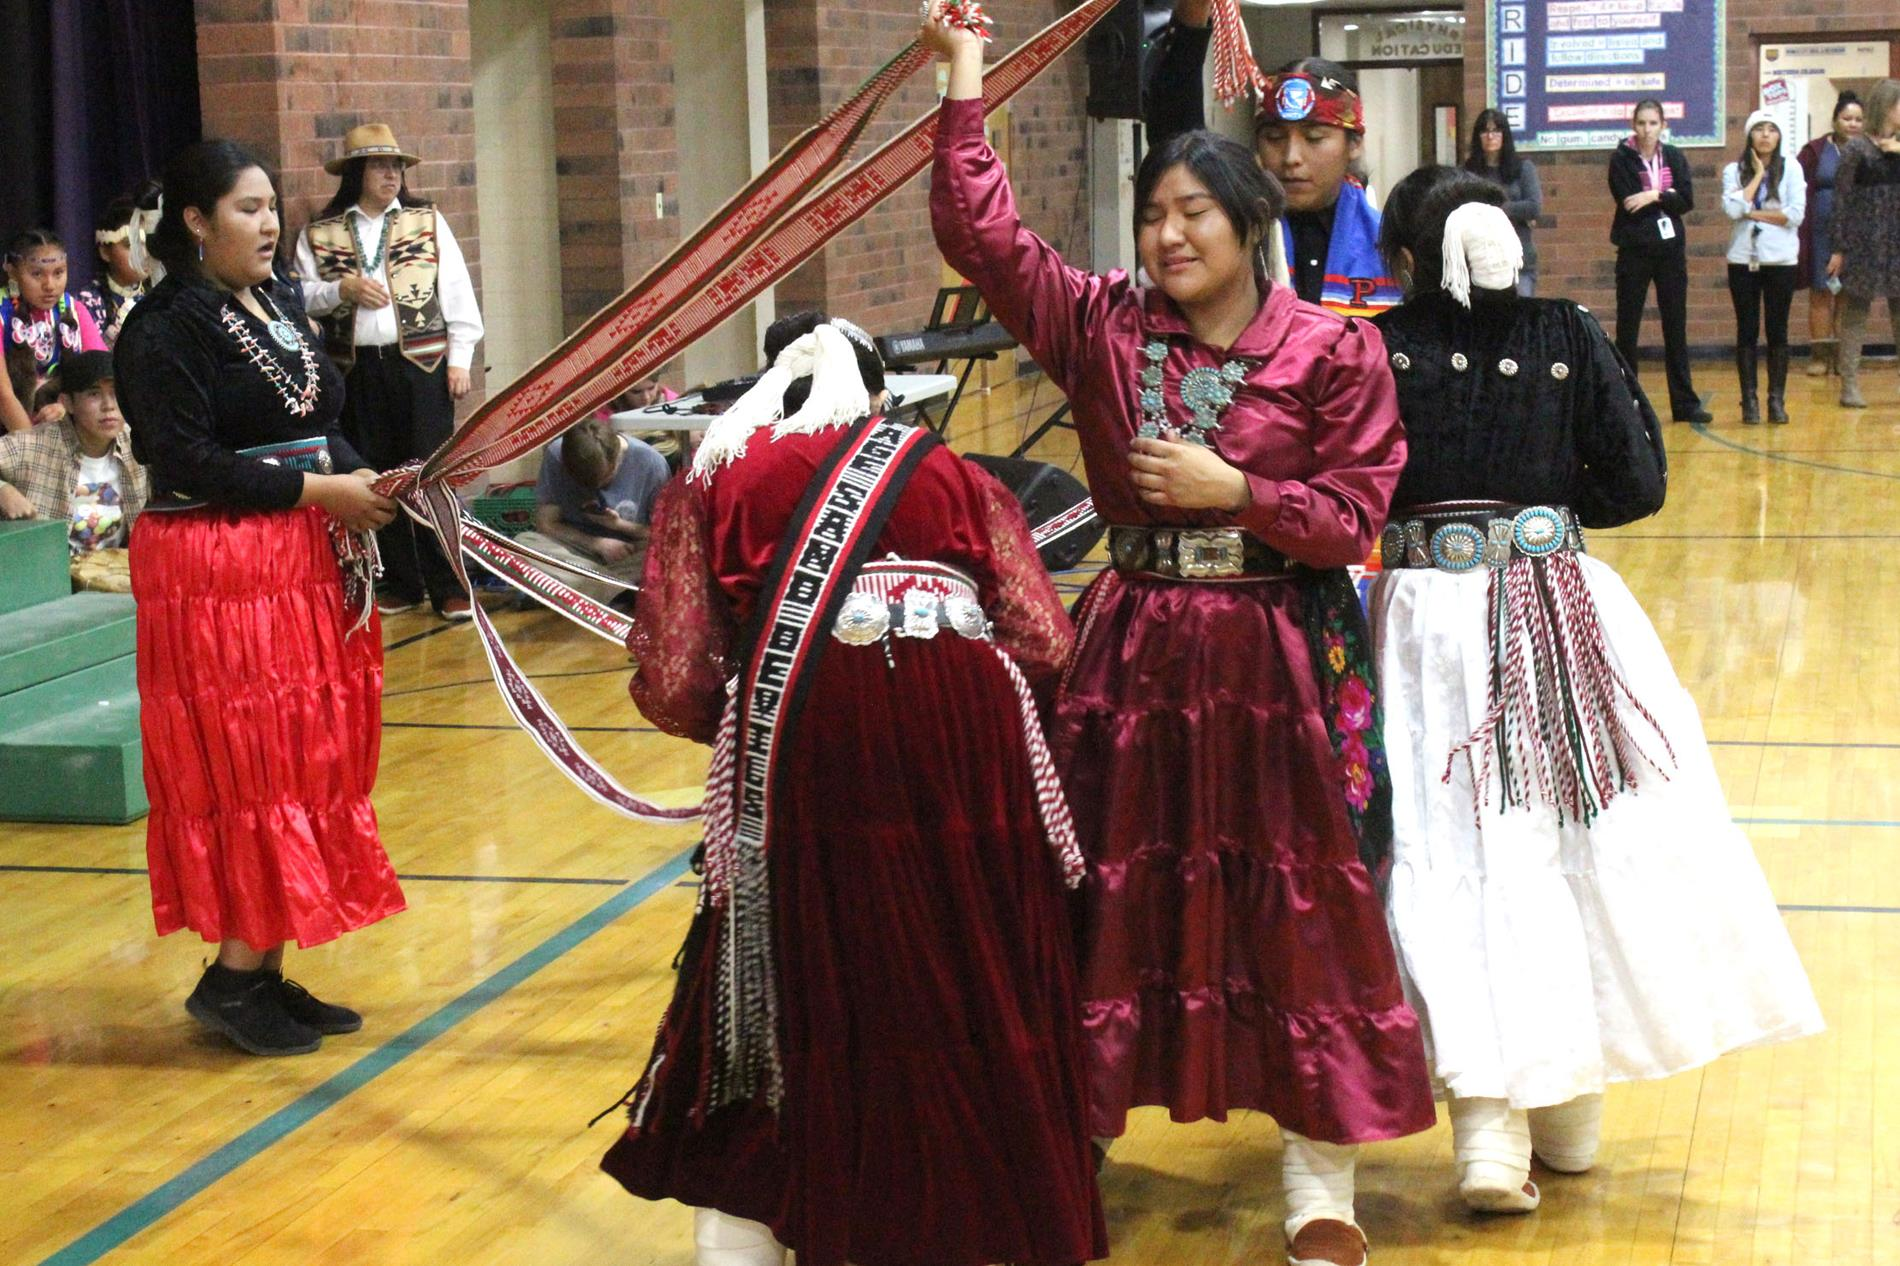 Navajo studenters performing a traditional dance.